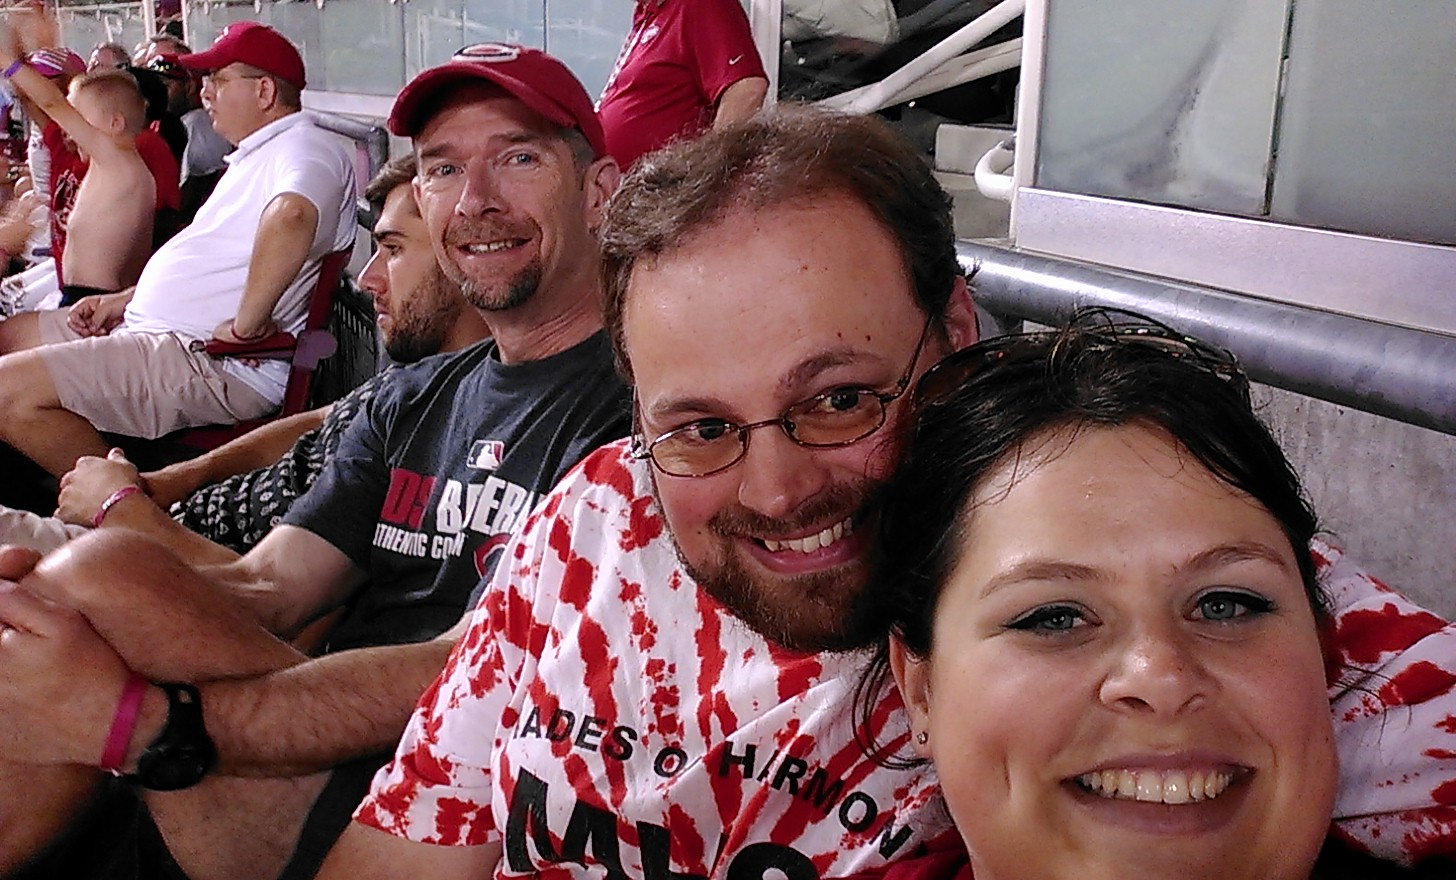 Red's Game with Friends